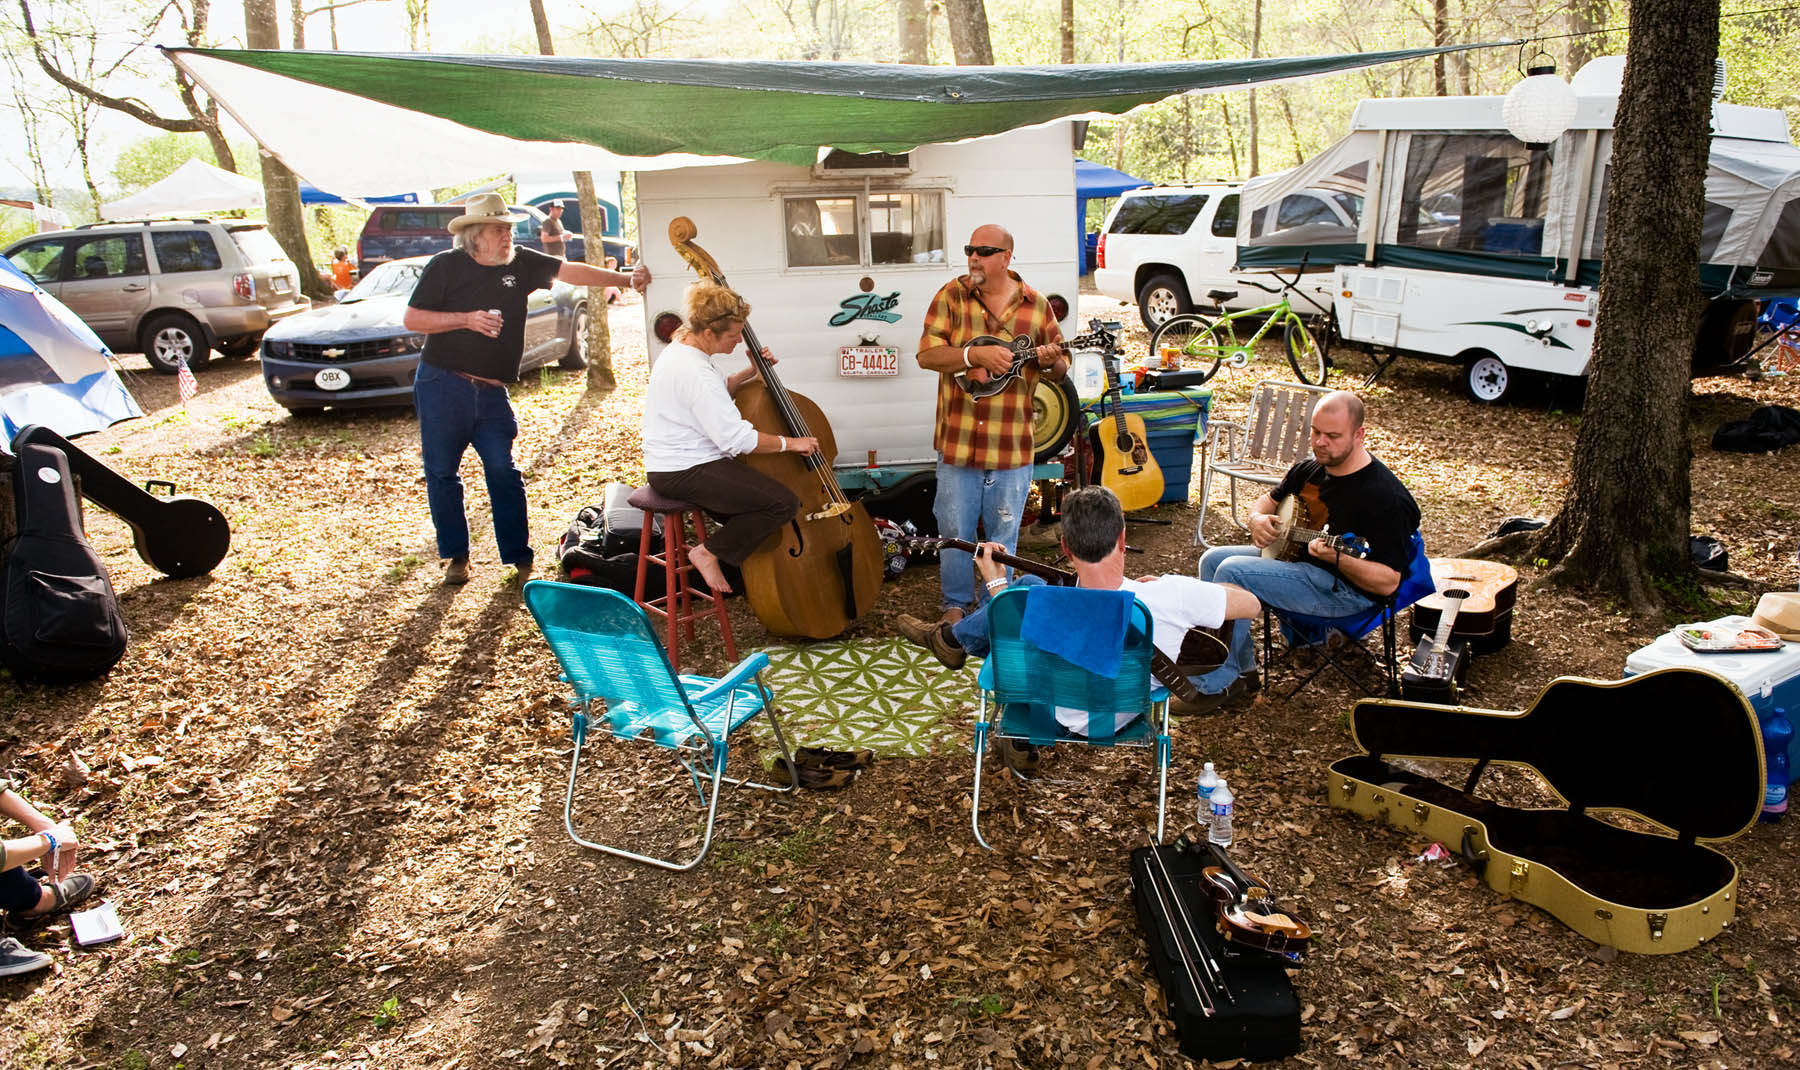 Third Place | Multiple PhotosAndrew Dye, Winston-Salem JournalMusician Tuck {quote}Coyote{quote} Carson listens as, from left, Sherri and Mark Criminger, Dave Paolucci and Chris Coyier jam on Thursday, April 24, 2014 at the Rivers Edge Campground in Wilkesboro, N.C.